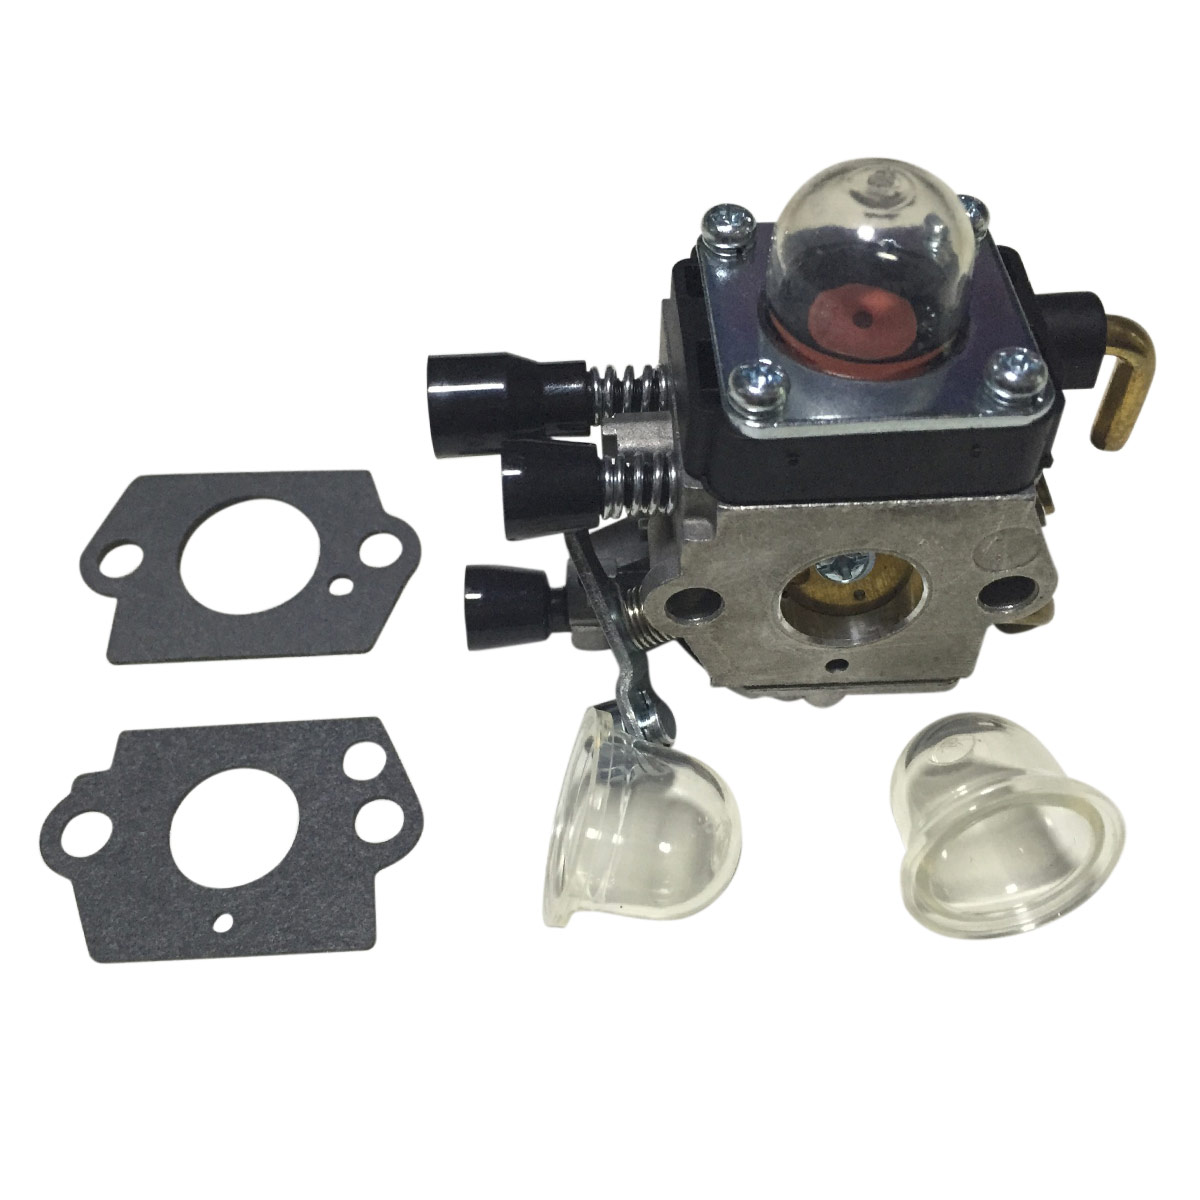 Carburetor Carb Fits Type FS38 FS45 FS46 FS55 FS74 FS75 FS80 FS85 Trimmer BRUSH CUTTER GRASS TRIMMER SPARE PARTS